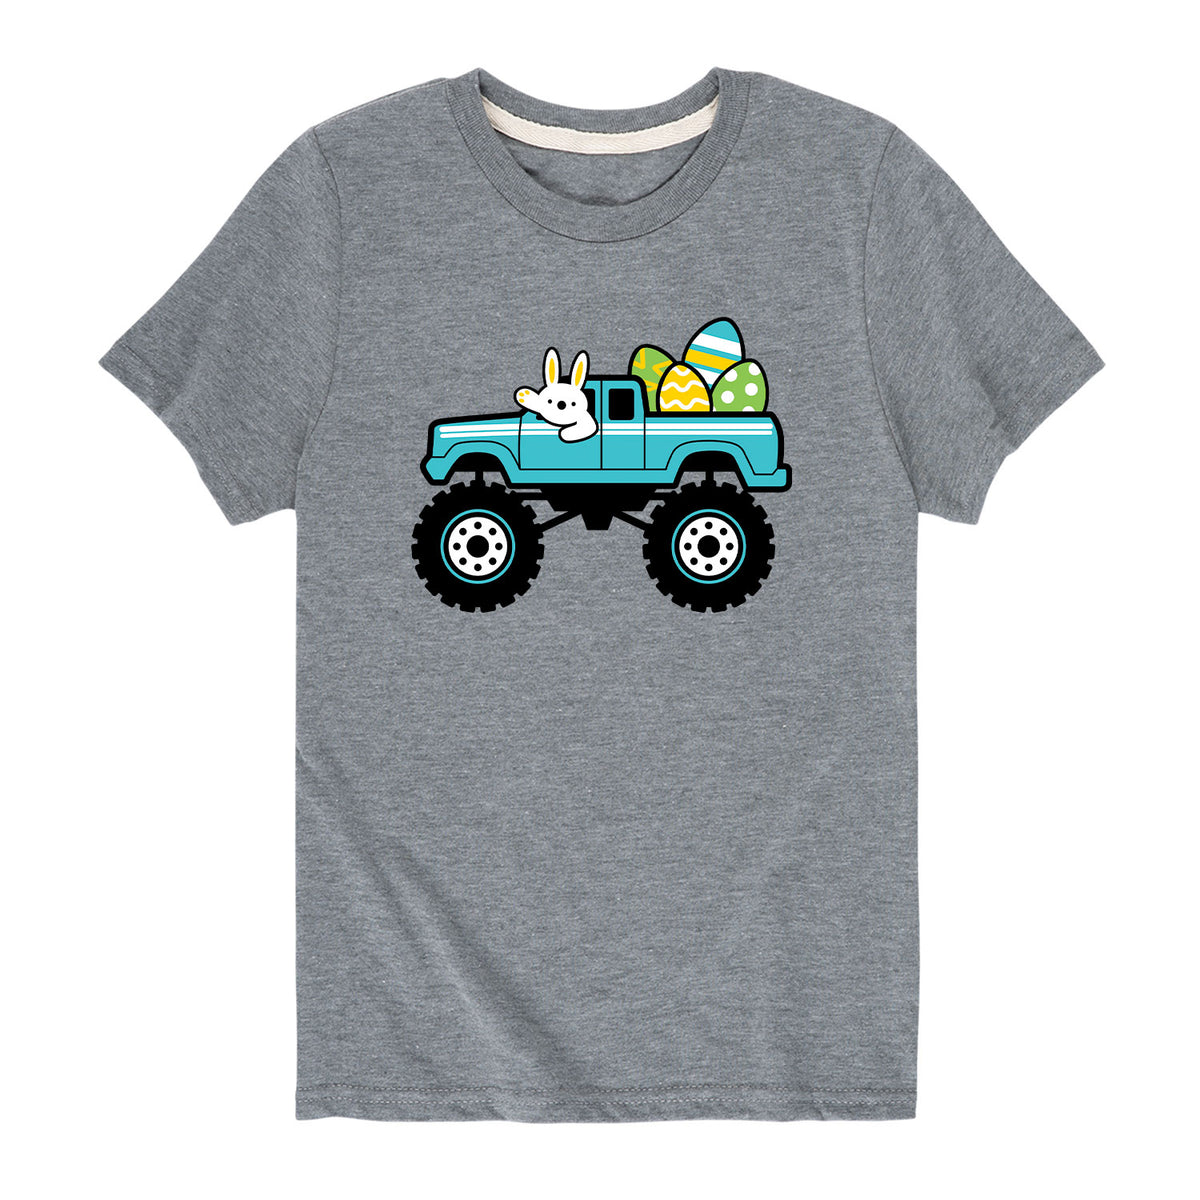 Truck with Easter Eggs - Youth & Toddler Short Sleeve T-Shirt